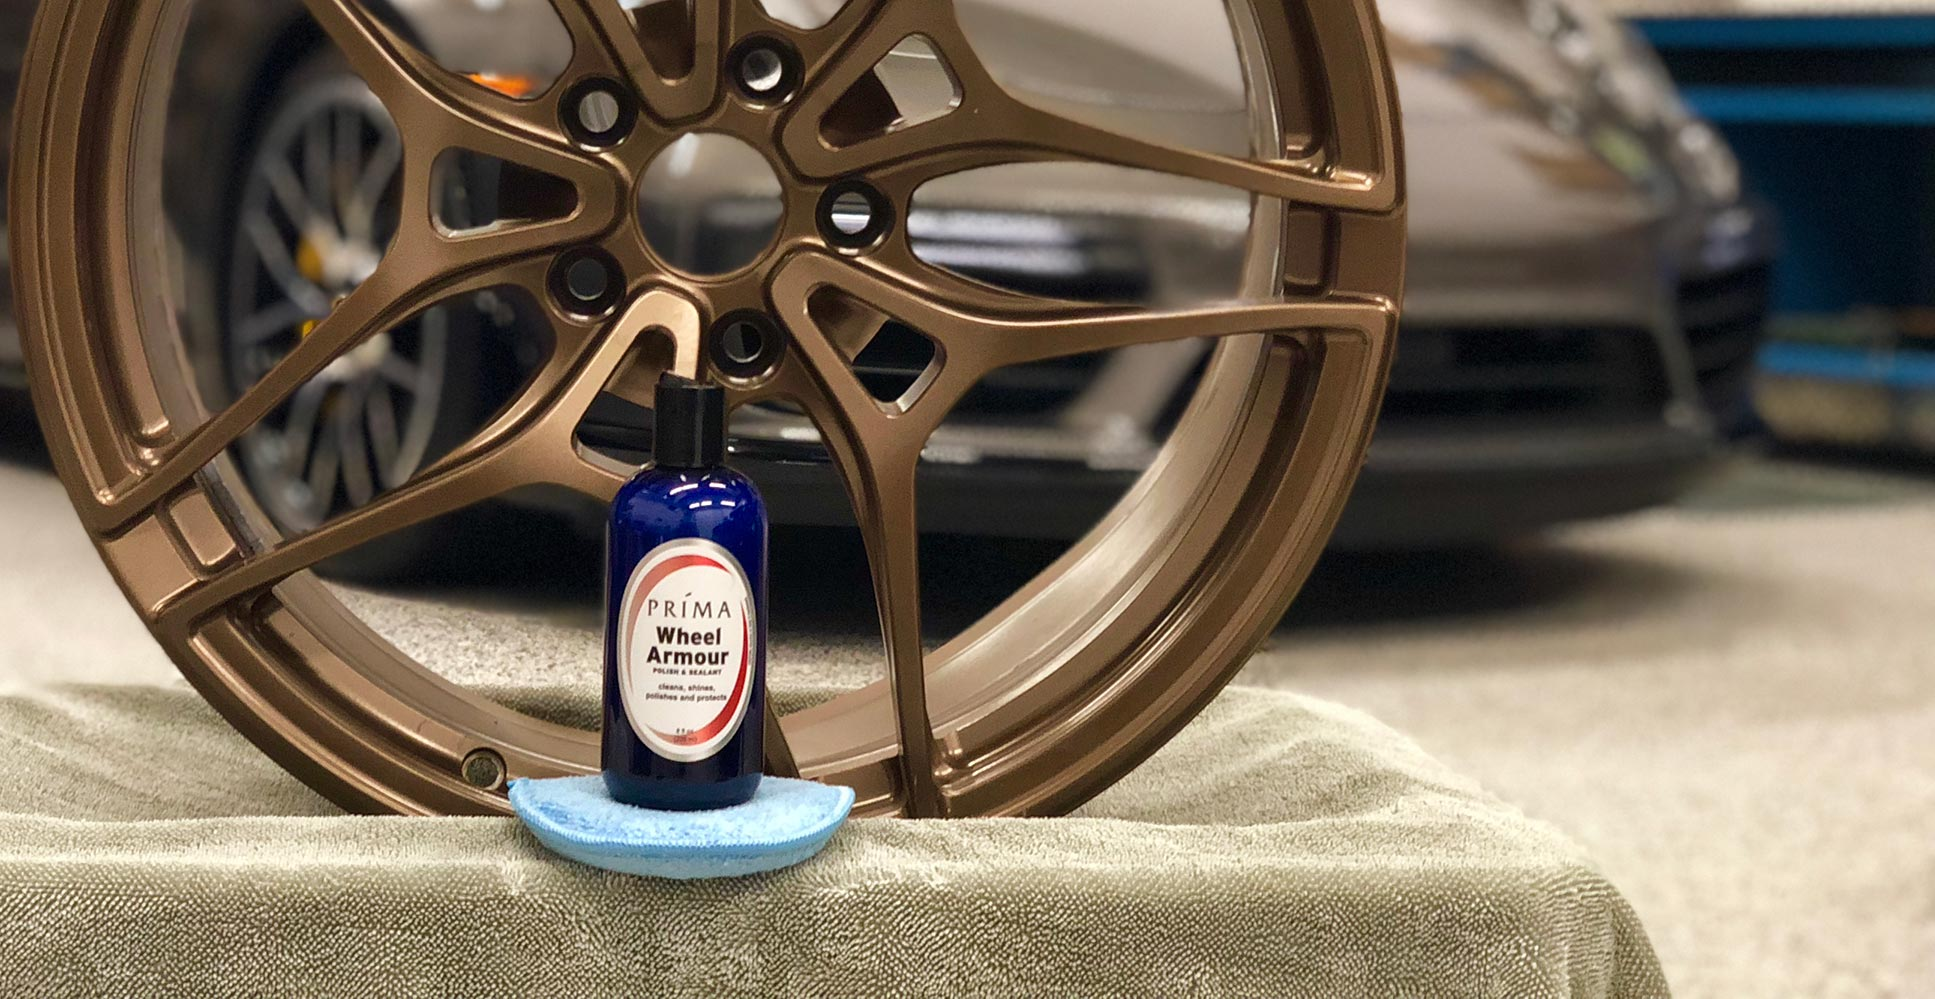 A bottle of Prima Wheel Armour wheel cleaner sits in front of a tire rim